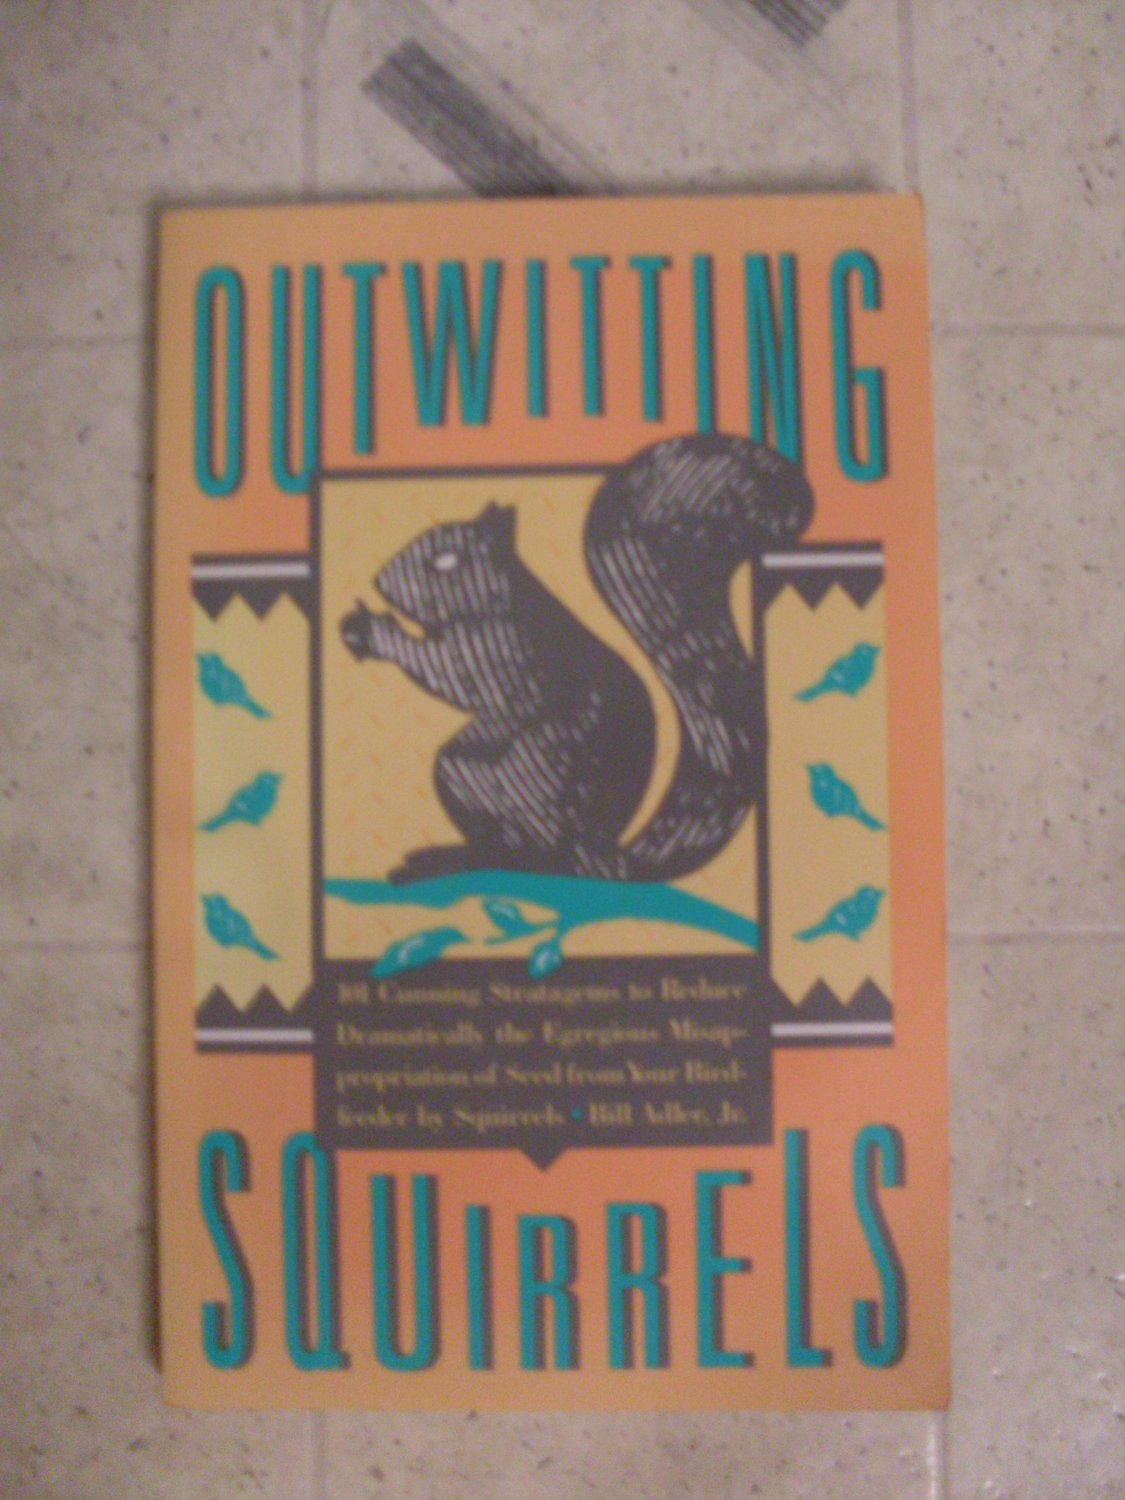 Outwitting Squirrels book protect your bird feeders